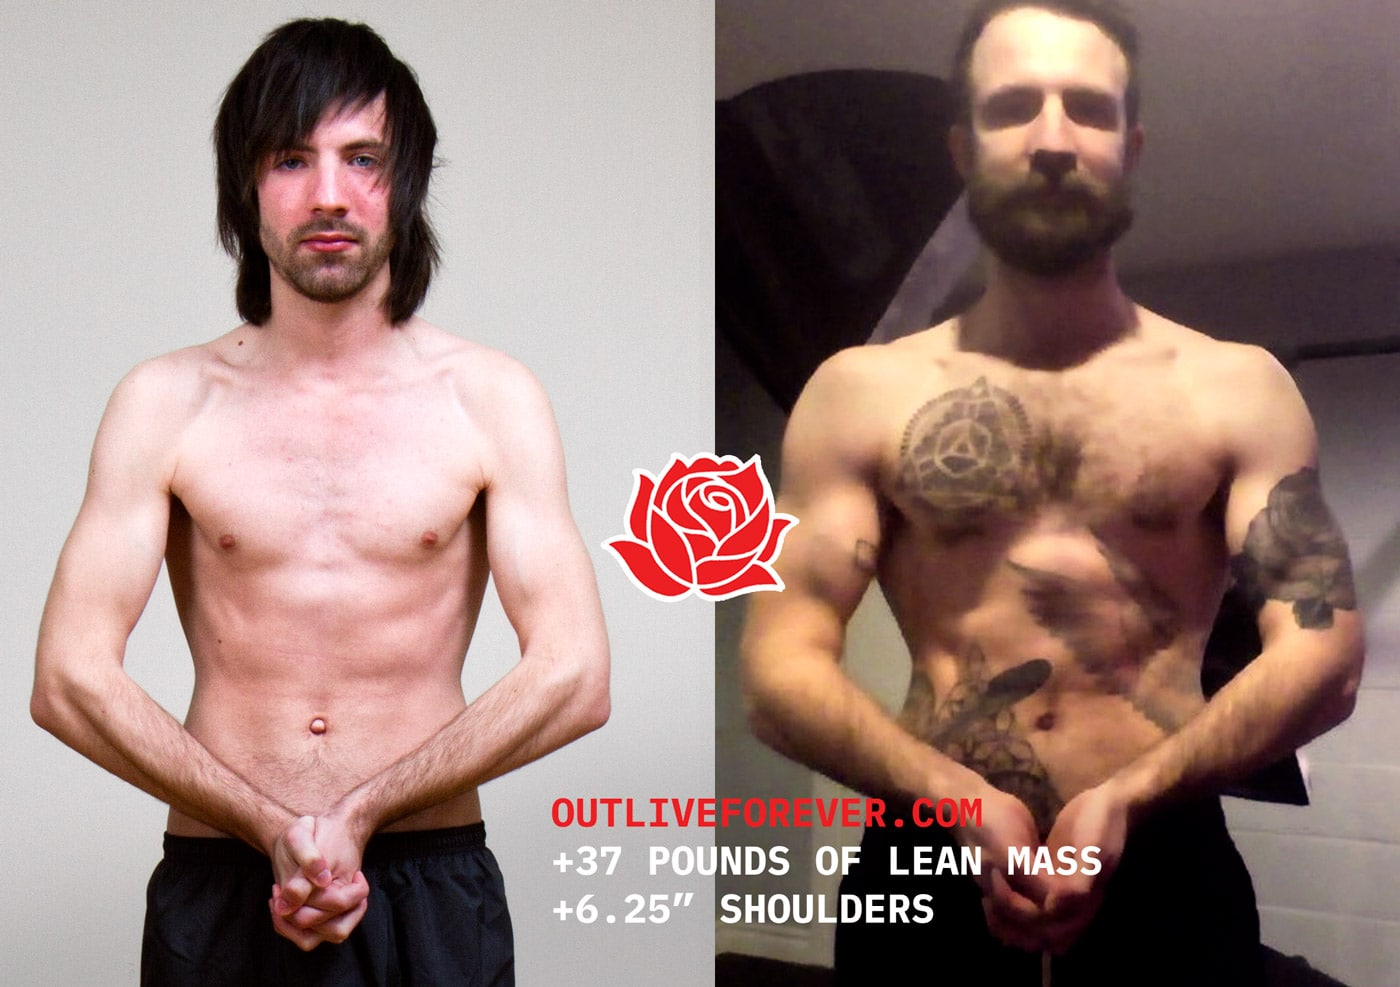 Jared Polowick Skinny Ectomorph Muscle Gain Body Transformation Before And After